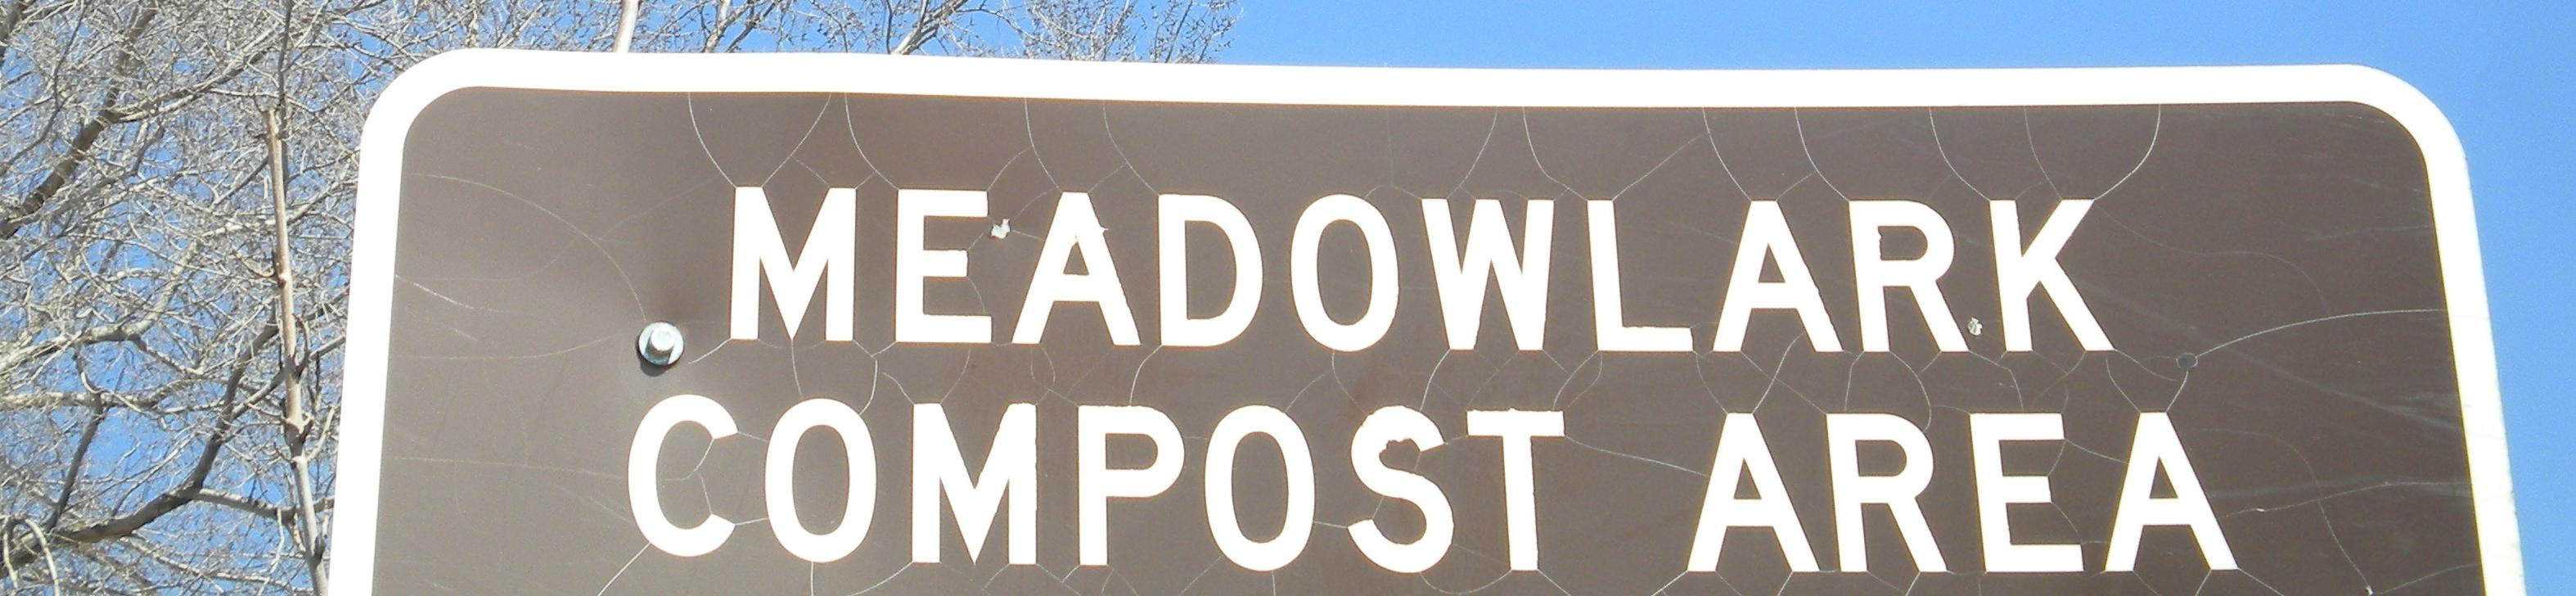 Meadowlark Compost Site